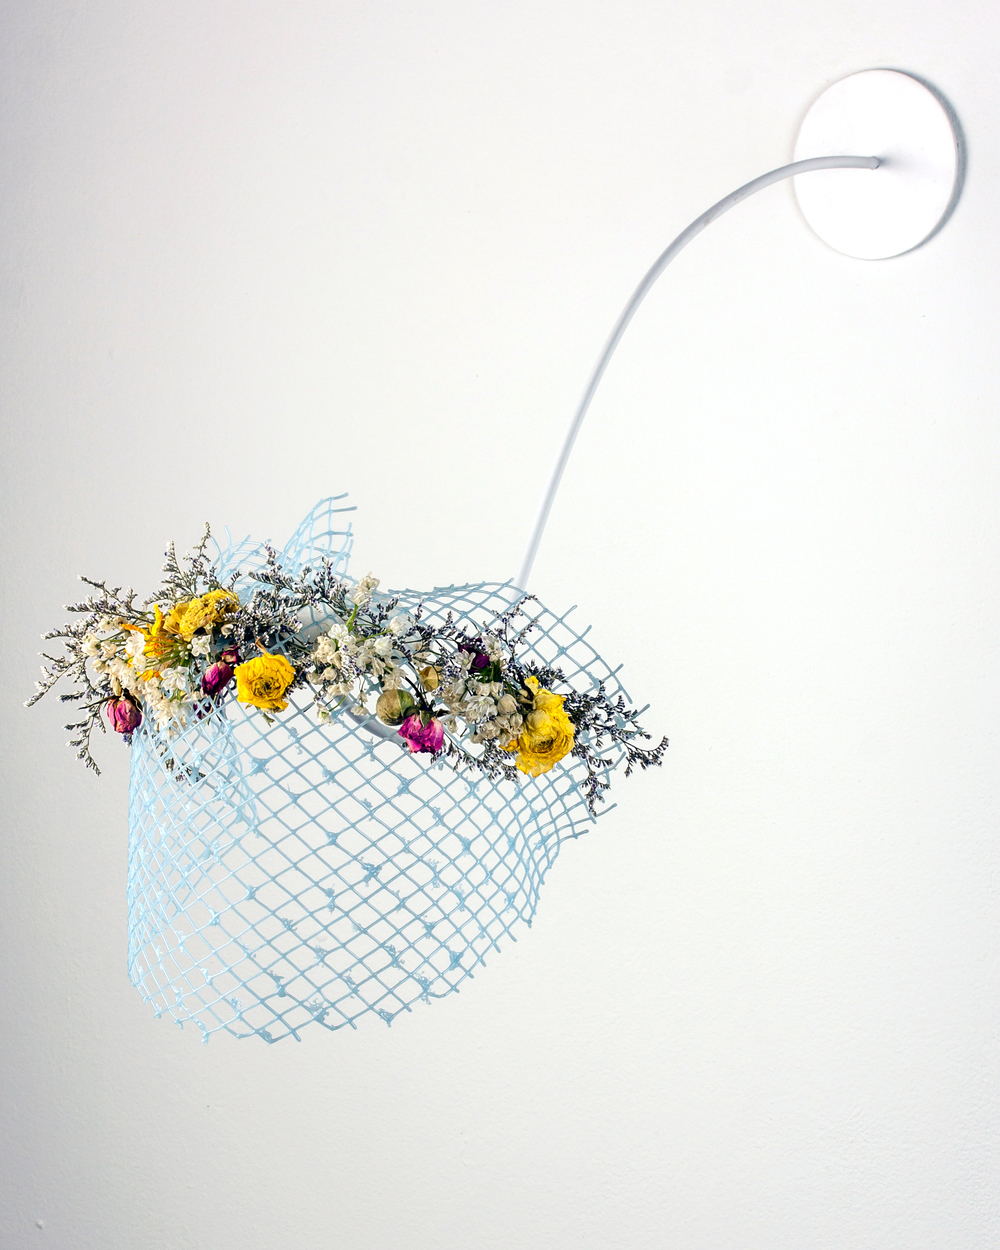 blue bridesmaid veil KATE CLEMENTS, 2013 PARAGRAPH GALLERY SHOW, FULL SIZED JPG-6.jpg